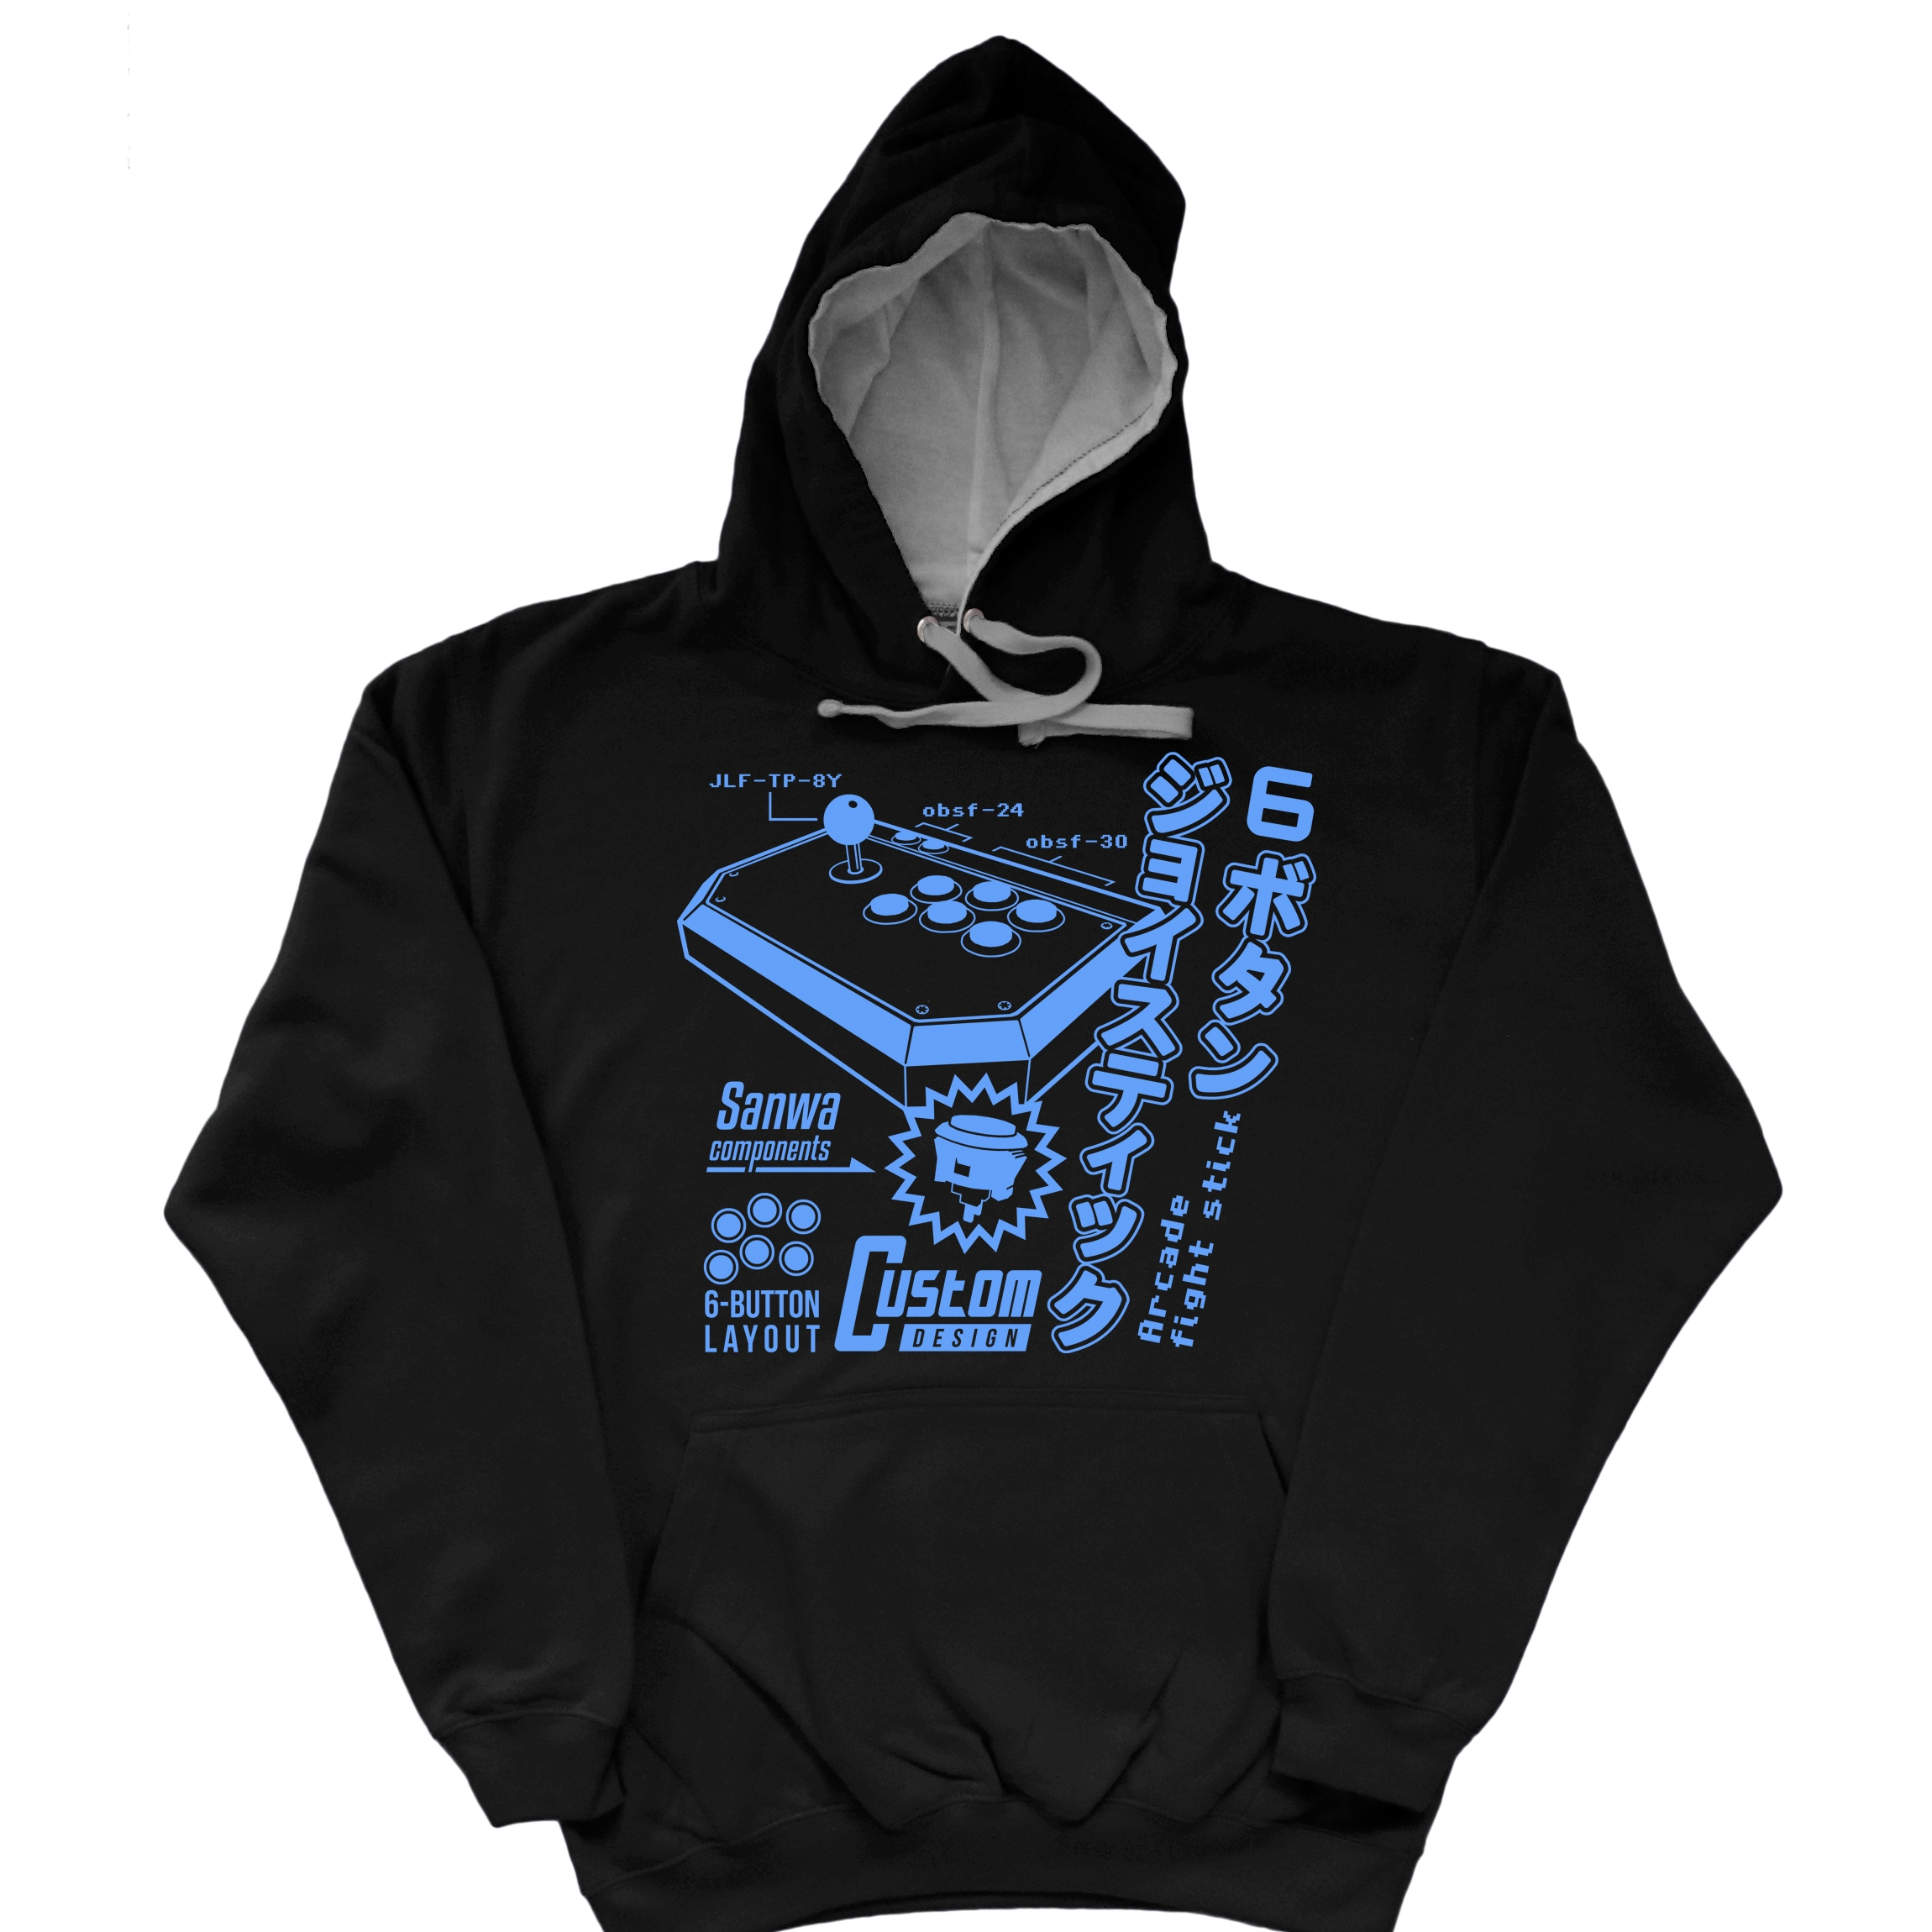 Alternative photo: Arcade Stick Hoodie